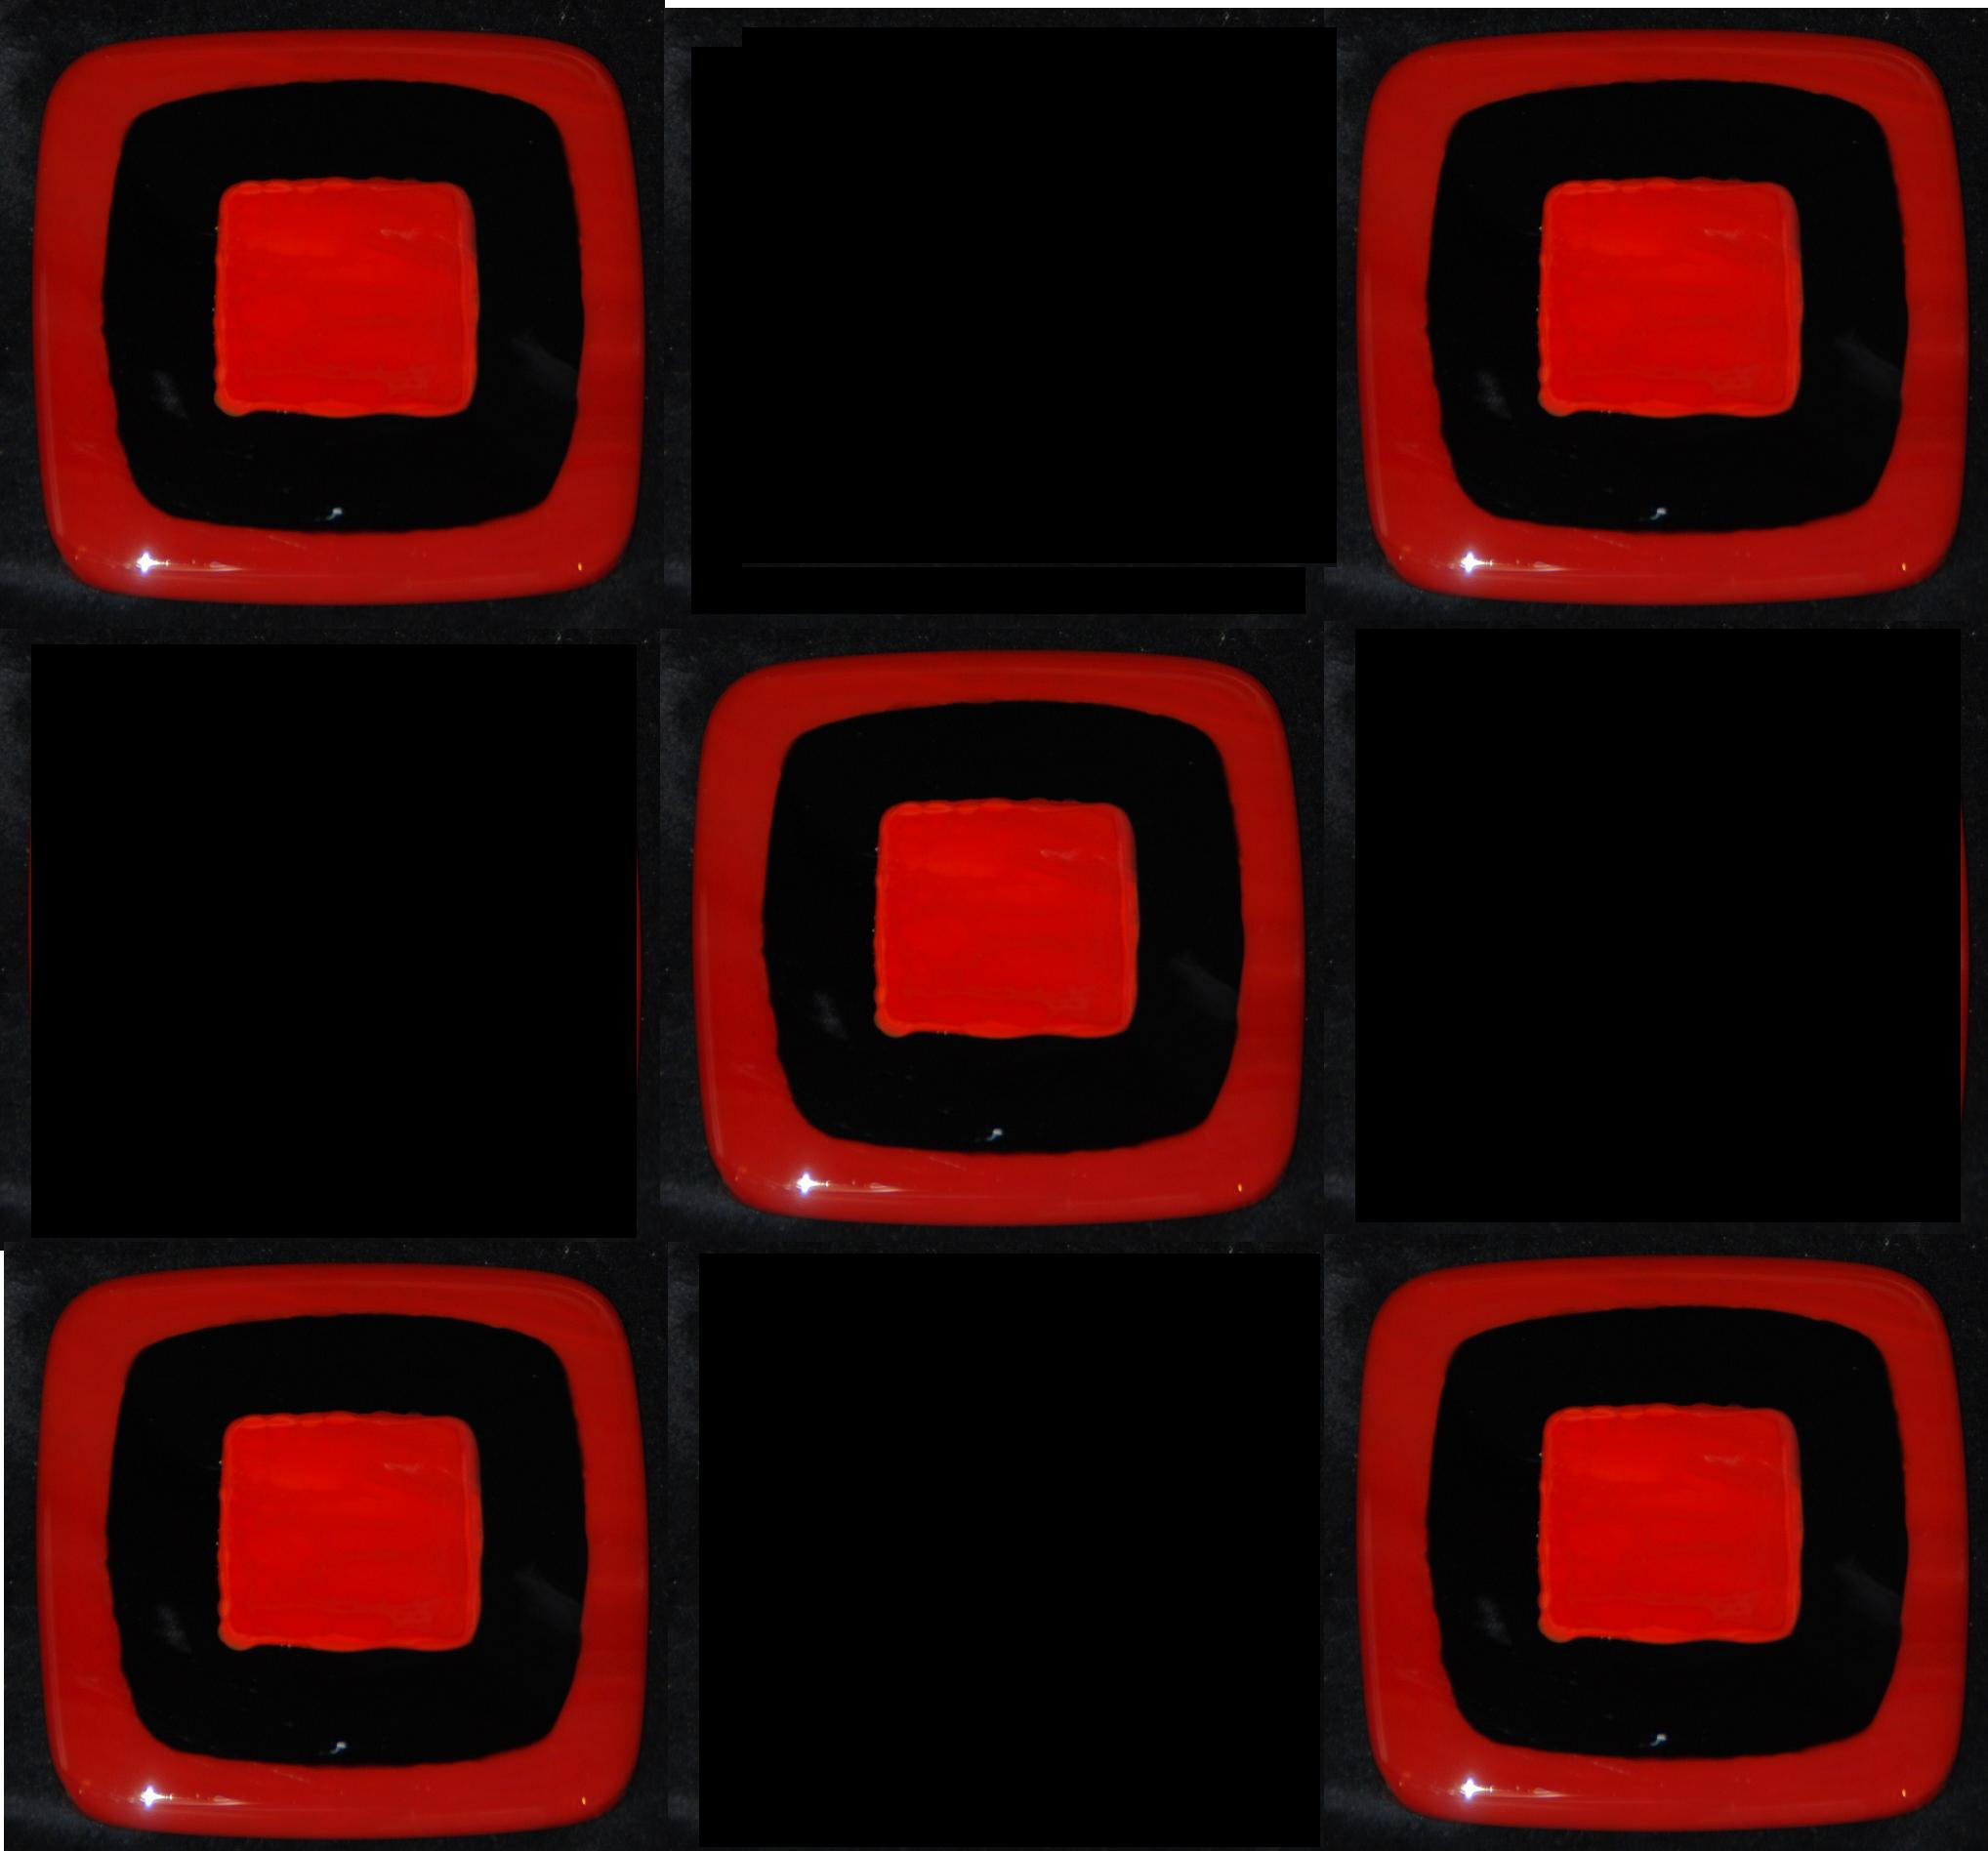 red on black tiles with black.jpg